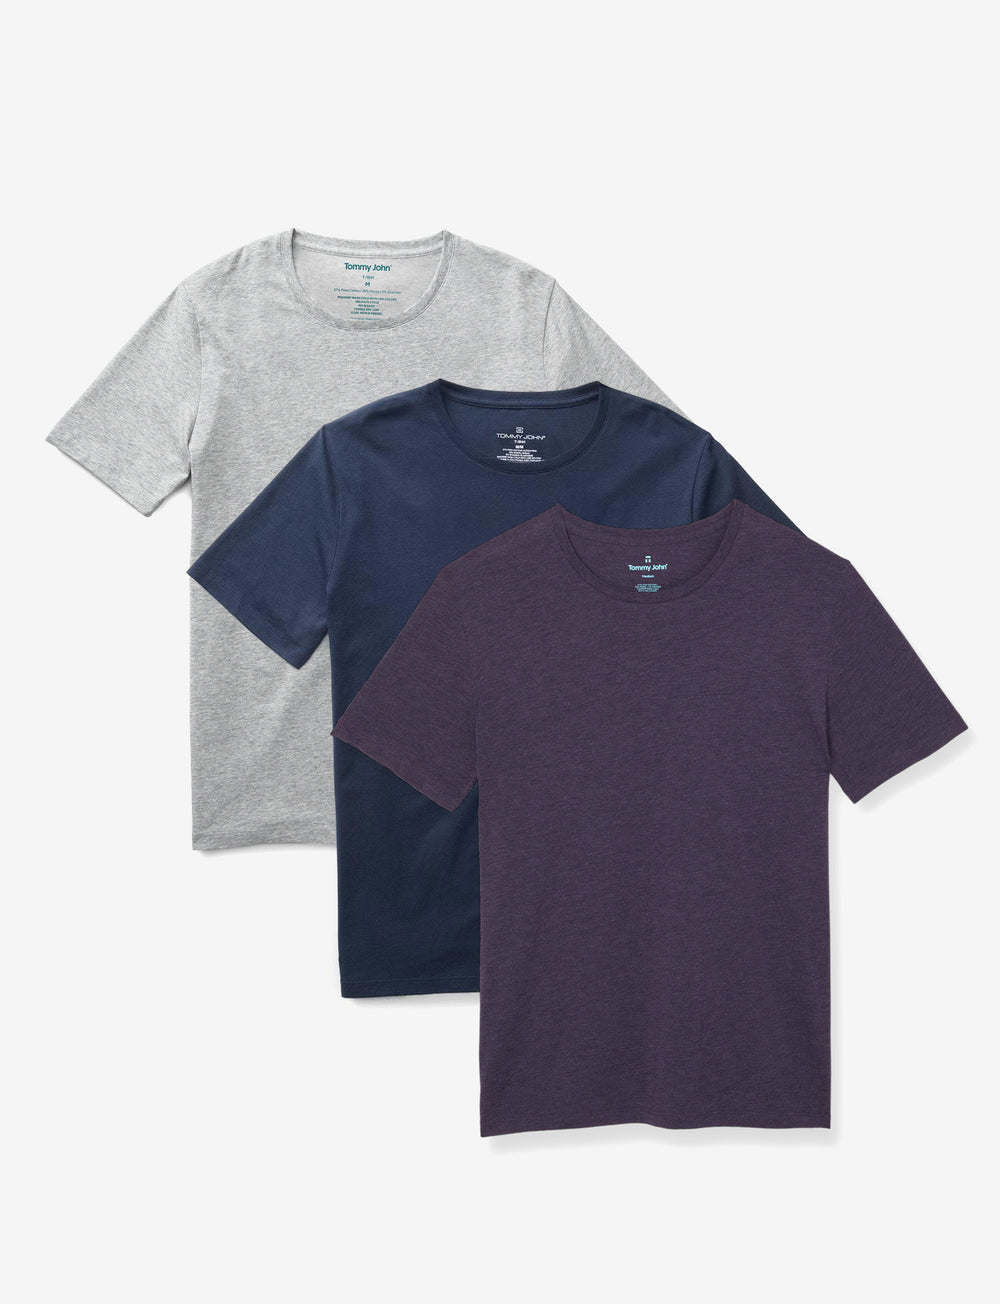 Second Skin Crew Neck Tee Fashion Pack Details Image